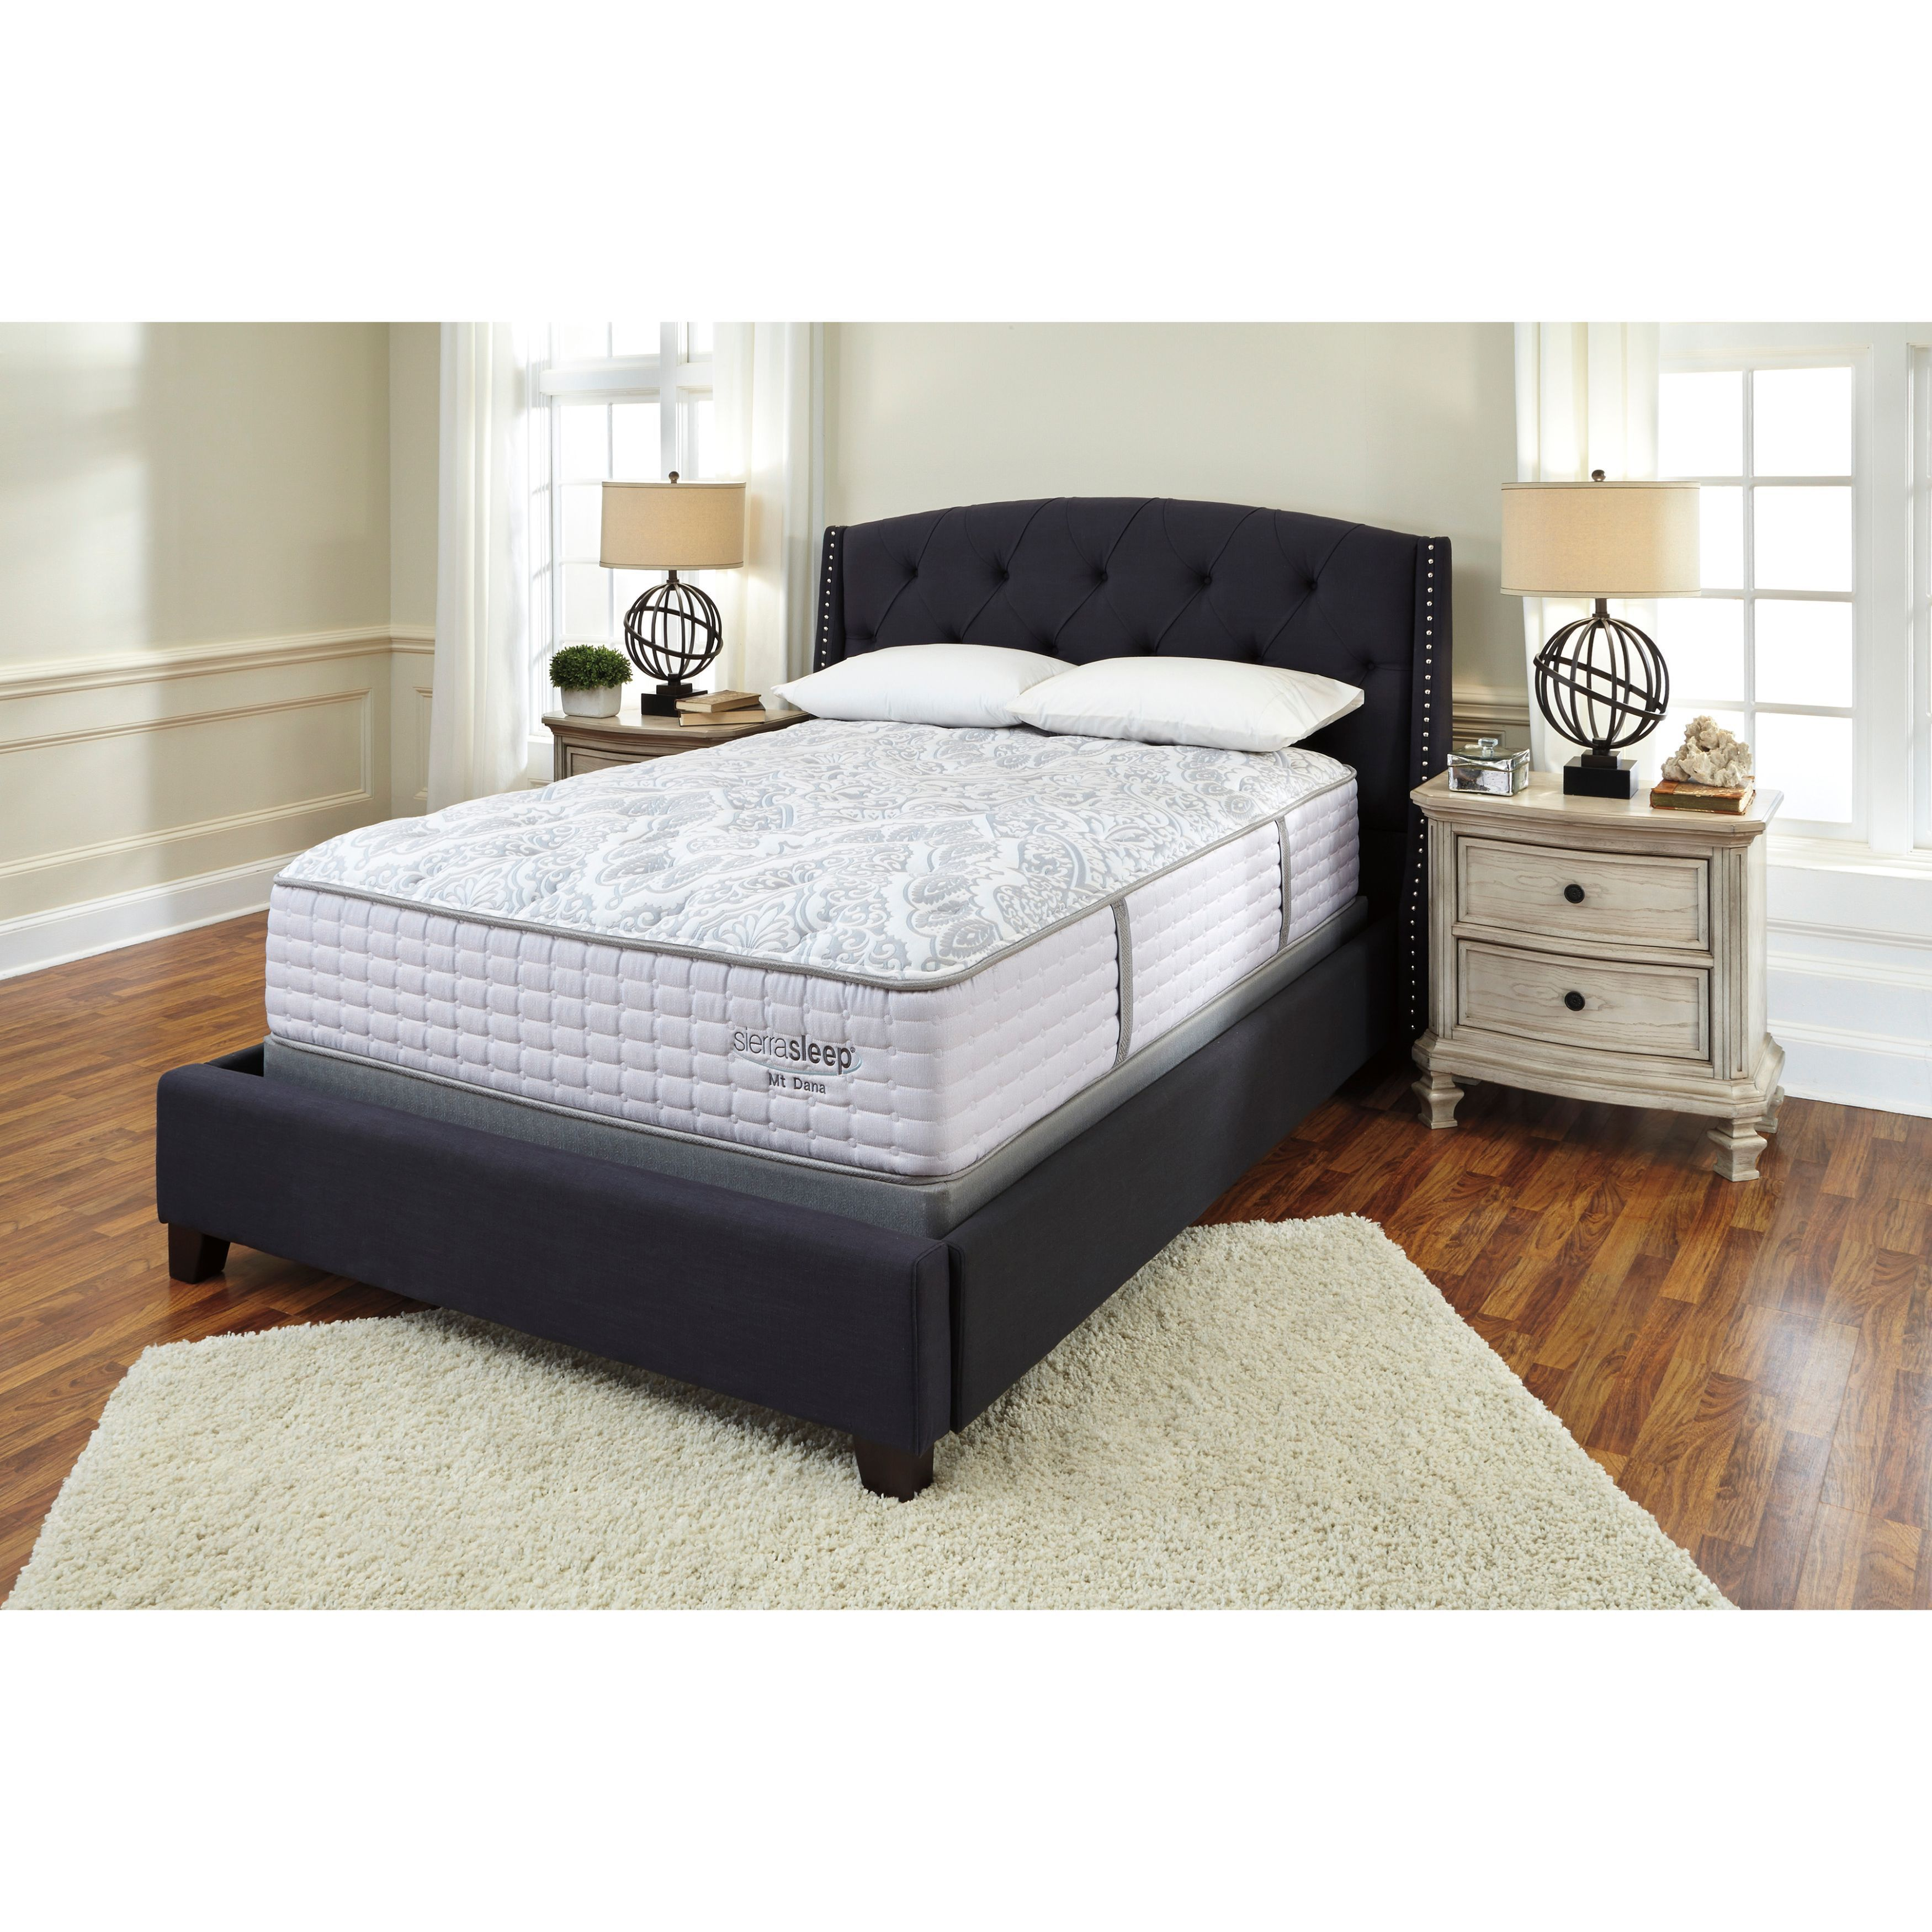 mattresses to size mattress kingsize worldwide germany british king delivered beds